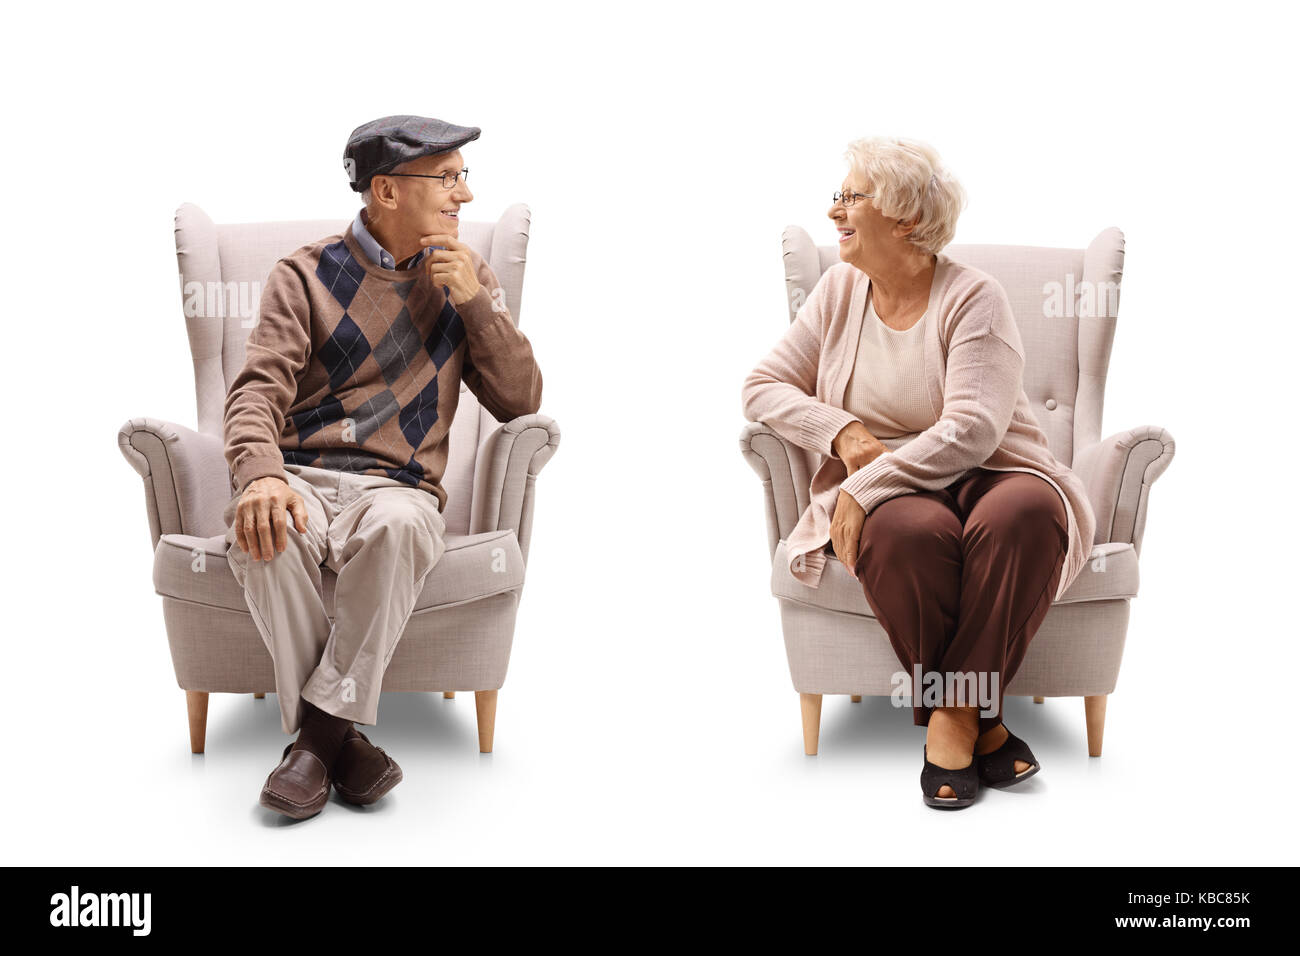 Seniors sitting in armchairs and having a conversation isolated on white background - Stock Image